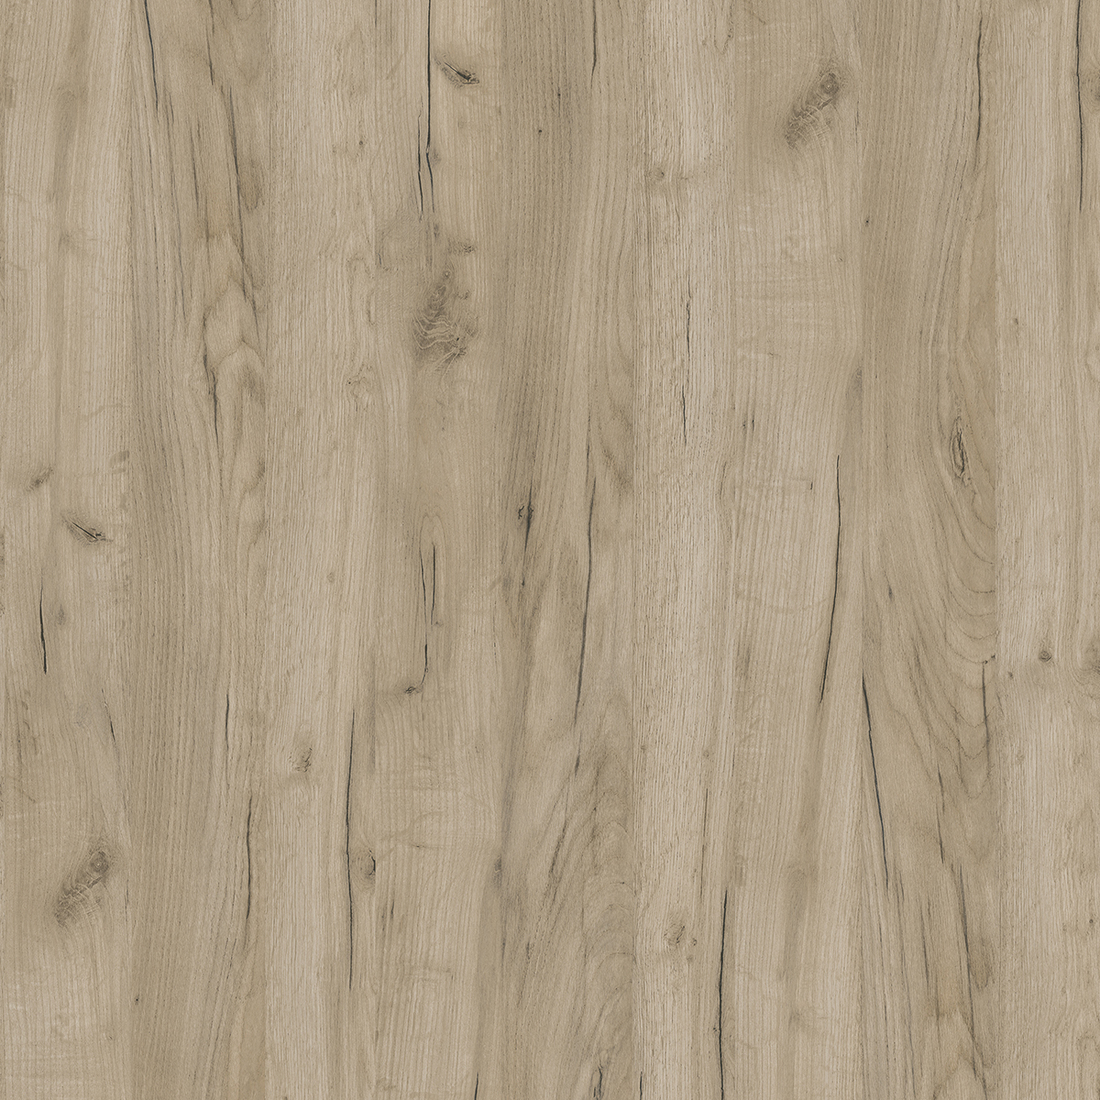 KR0 K002- FP M38 Szürke Craft Tölgy / Grey Craft Oak munkalap